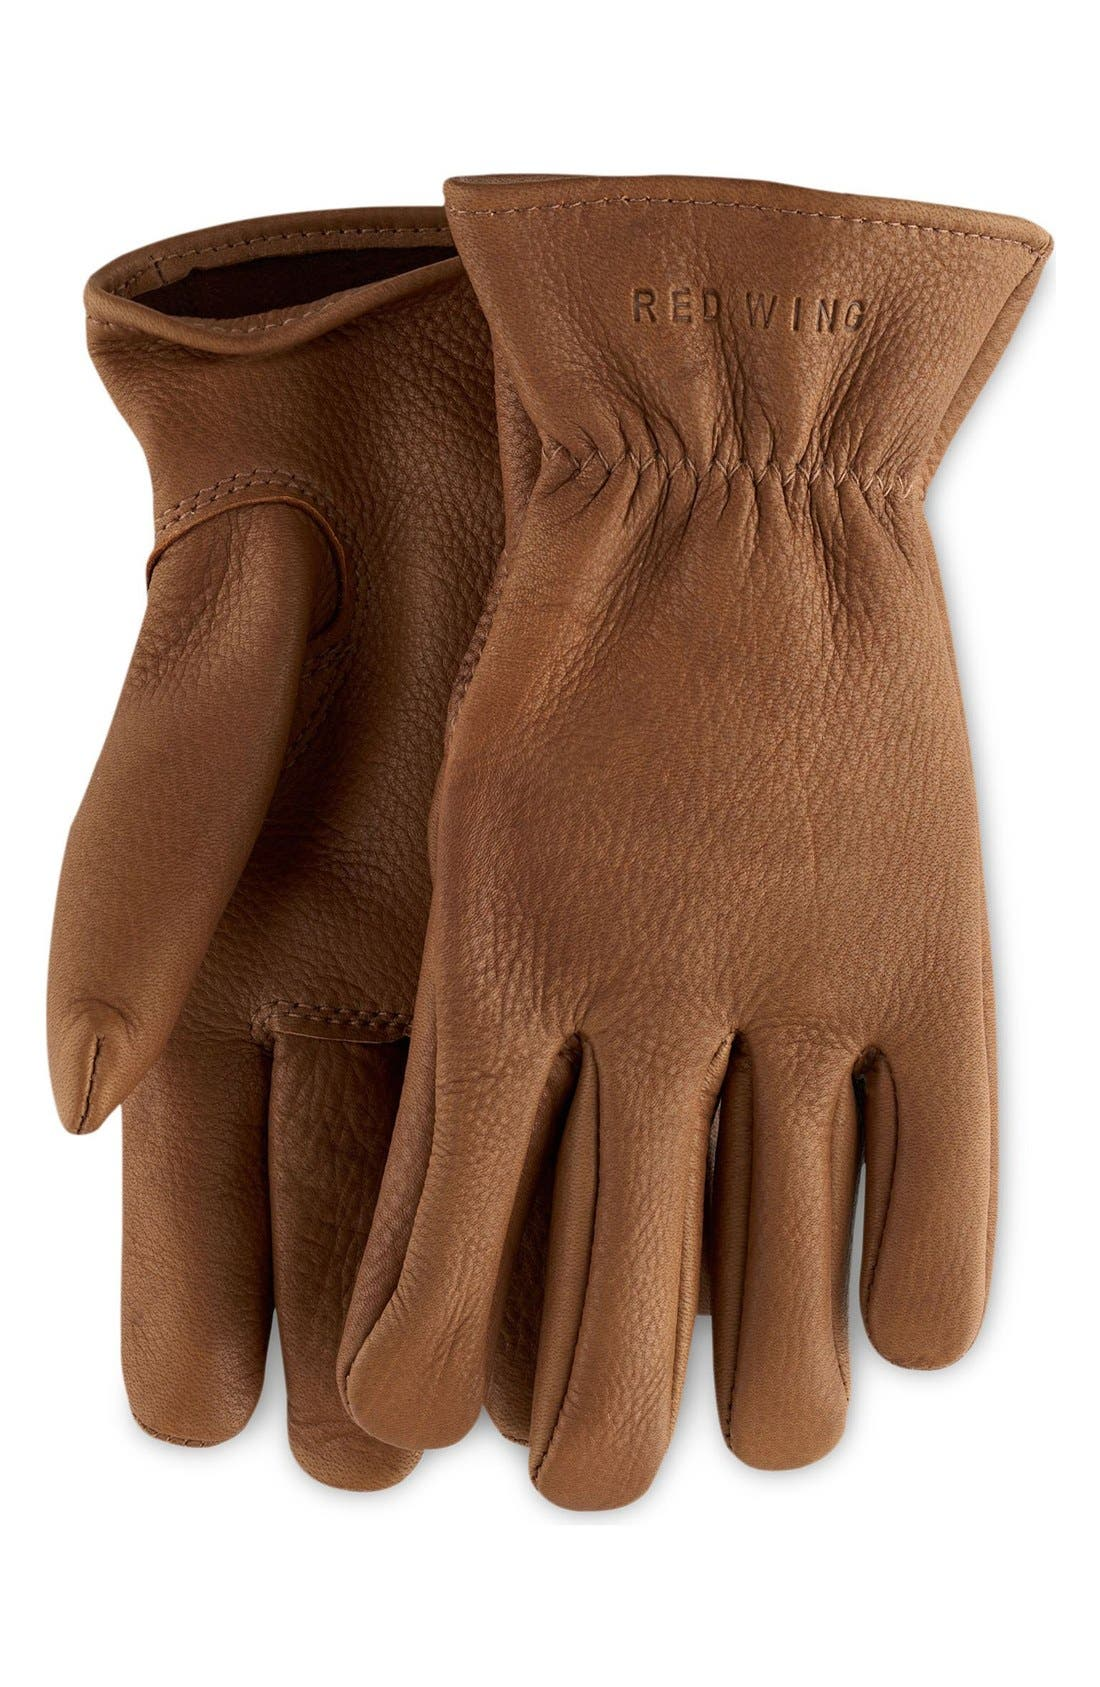 Buckskin Leather Gloves,                             Main thumbnail 1, color,                             NUTMEG